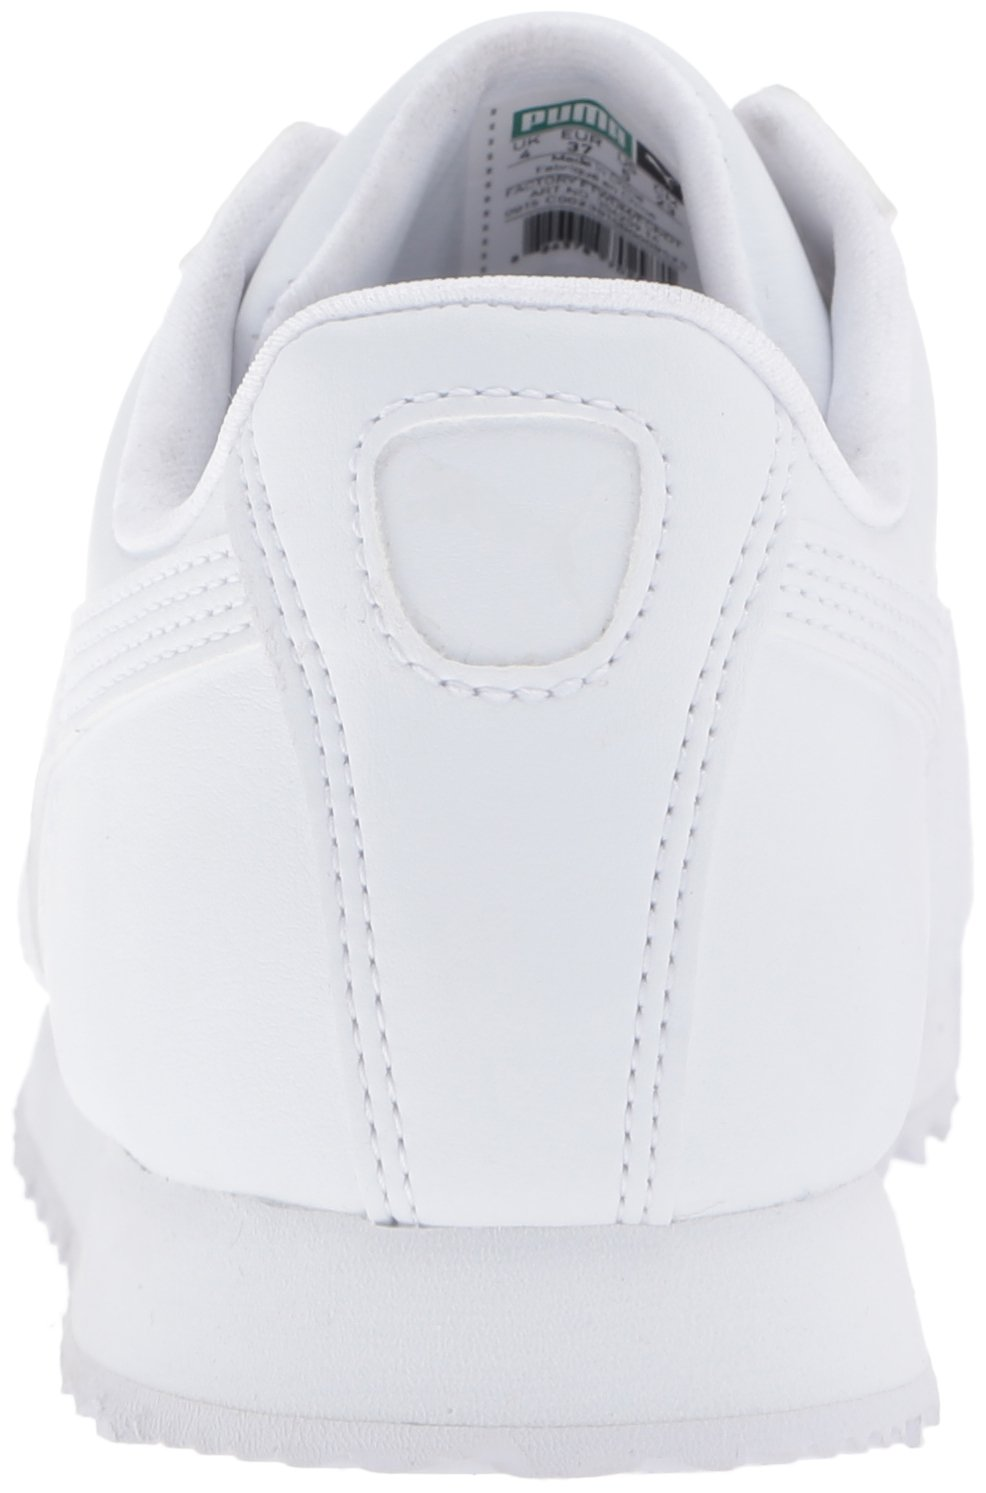 PUMA Roma Basic JR Sneaker , White/Light Gray, 3 M US Little Kid by PUMA (Image #2)